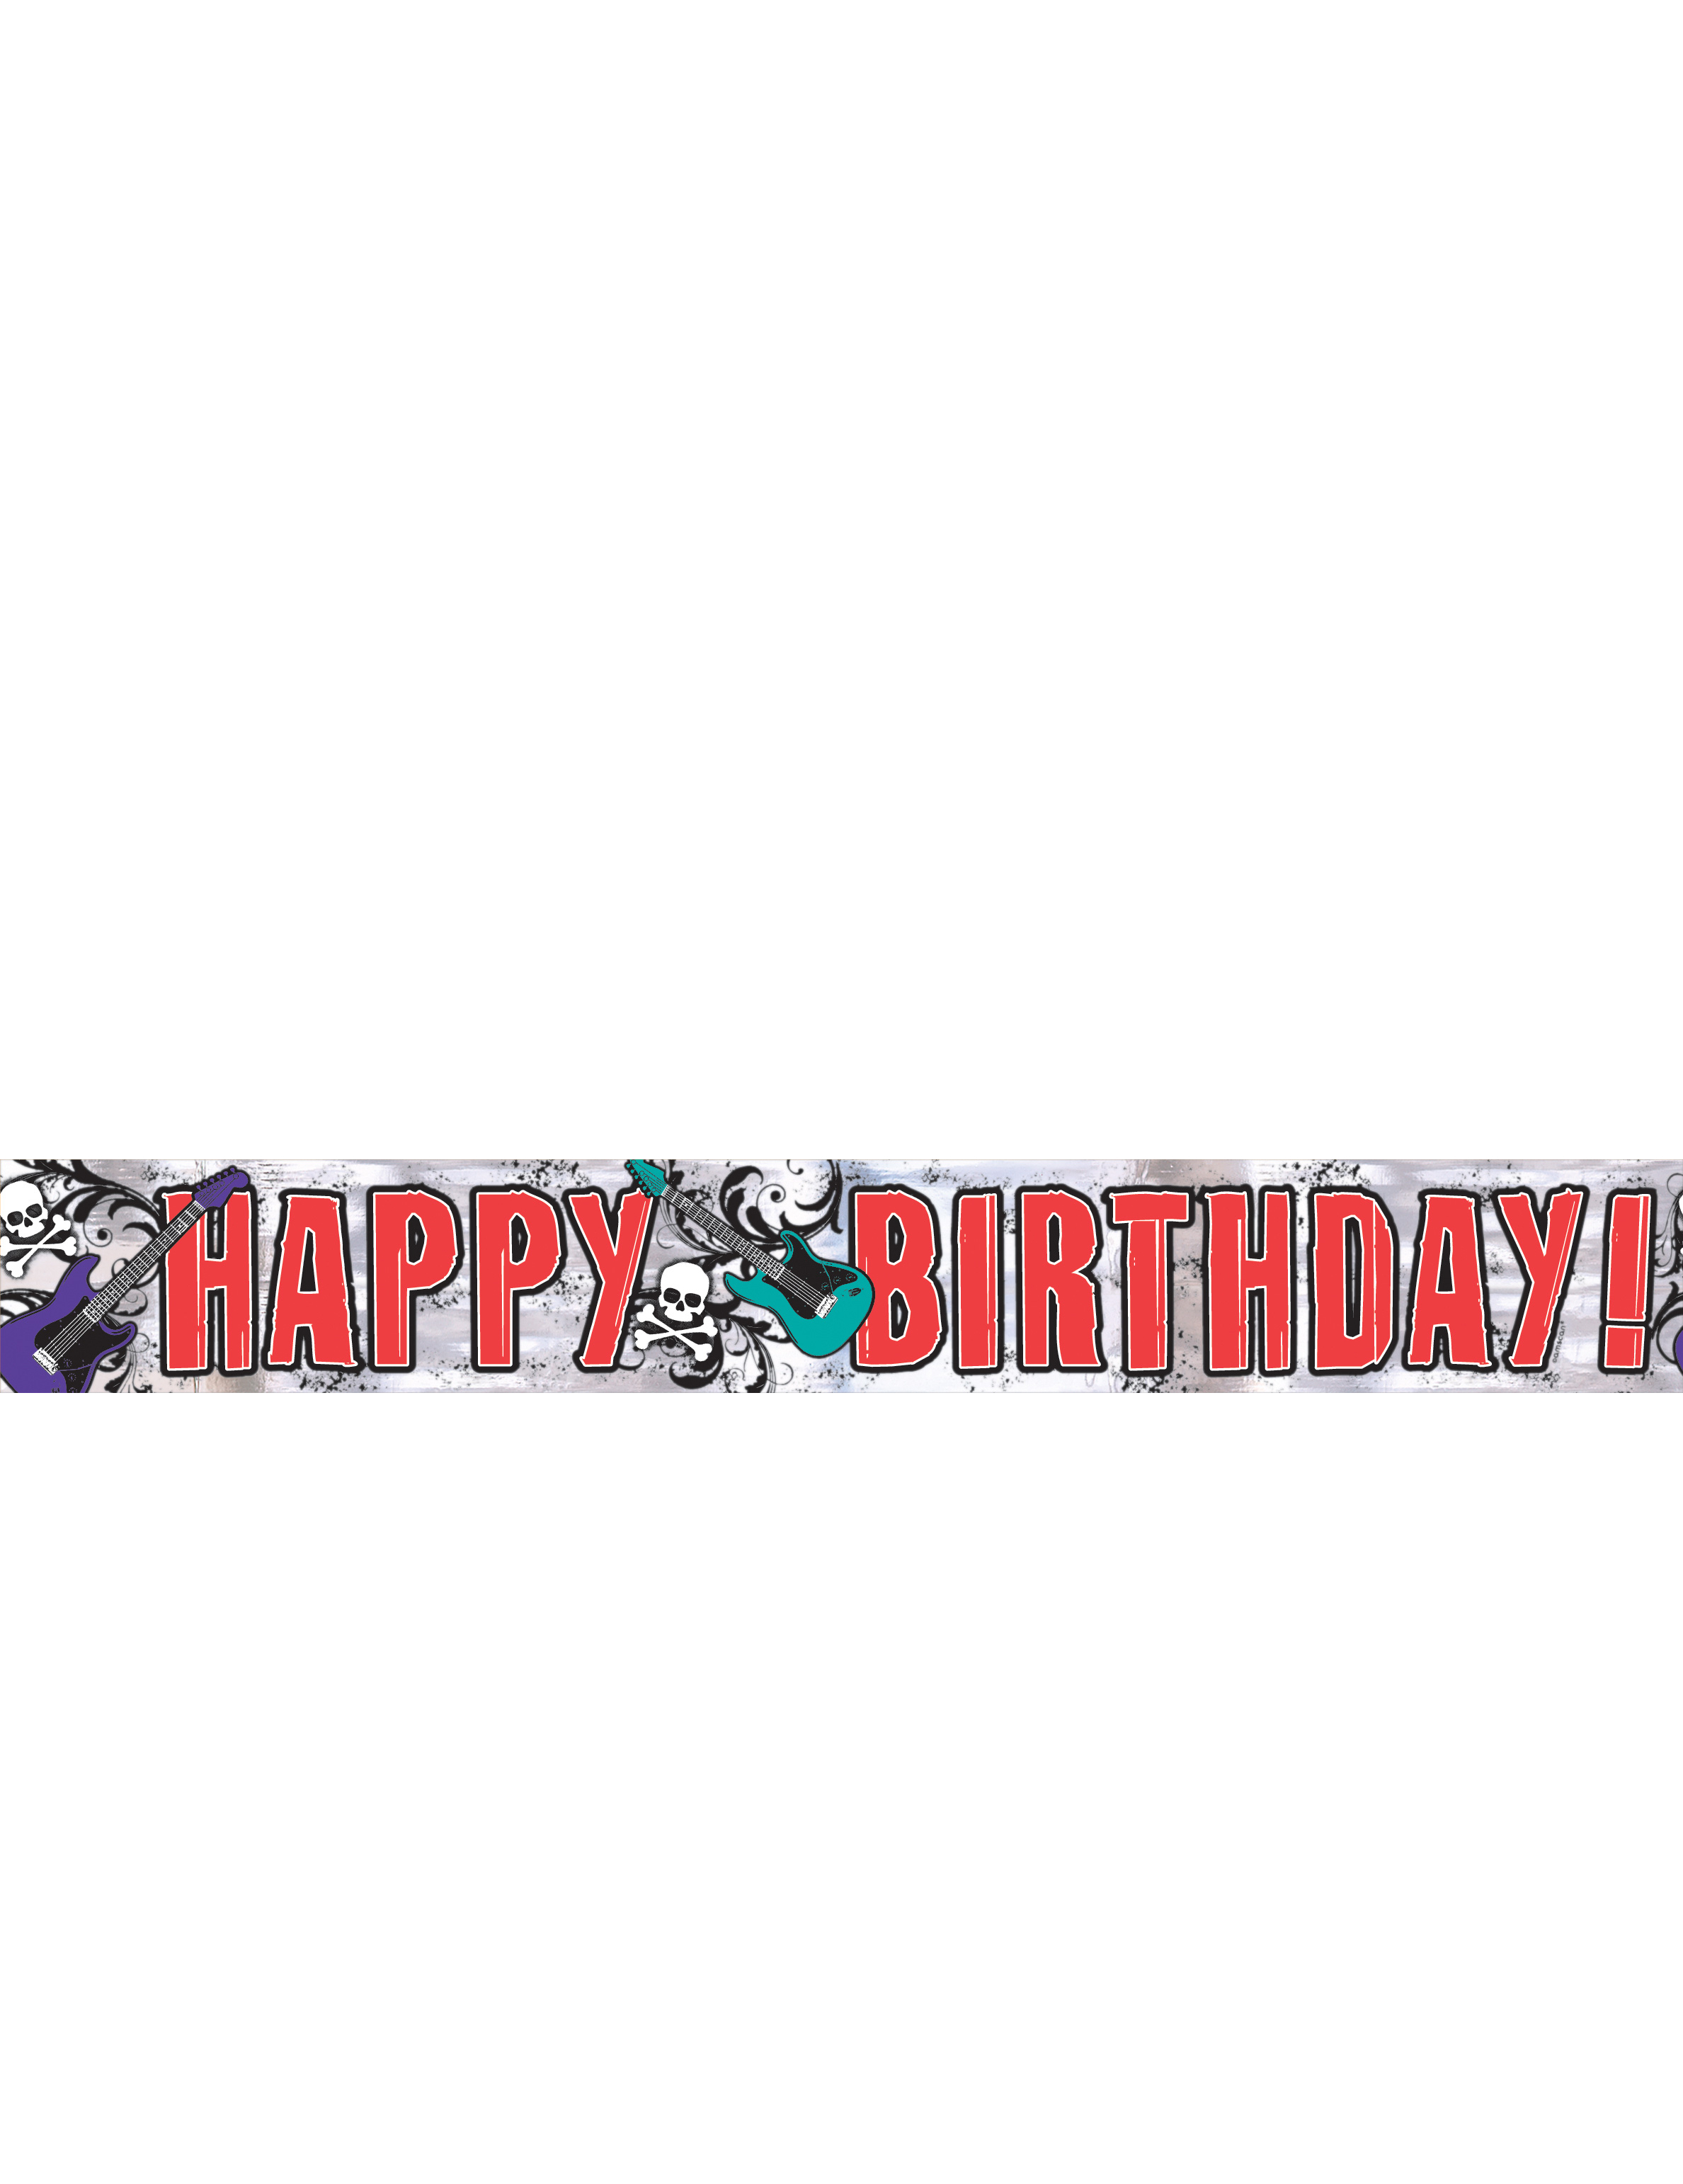 Rock and roll forever quotes quotesgram - Rock And Roll Birthday Quotes Quotesgram 2377x850